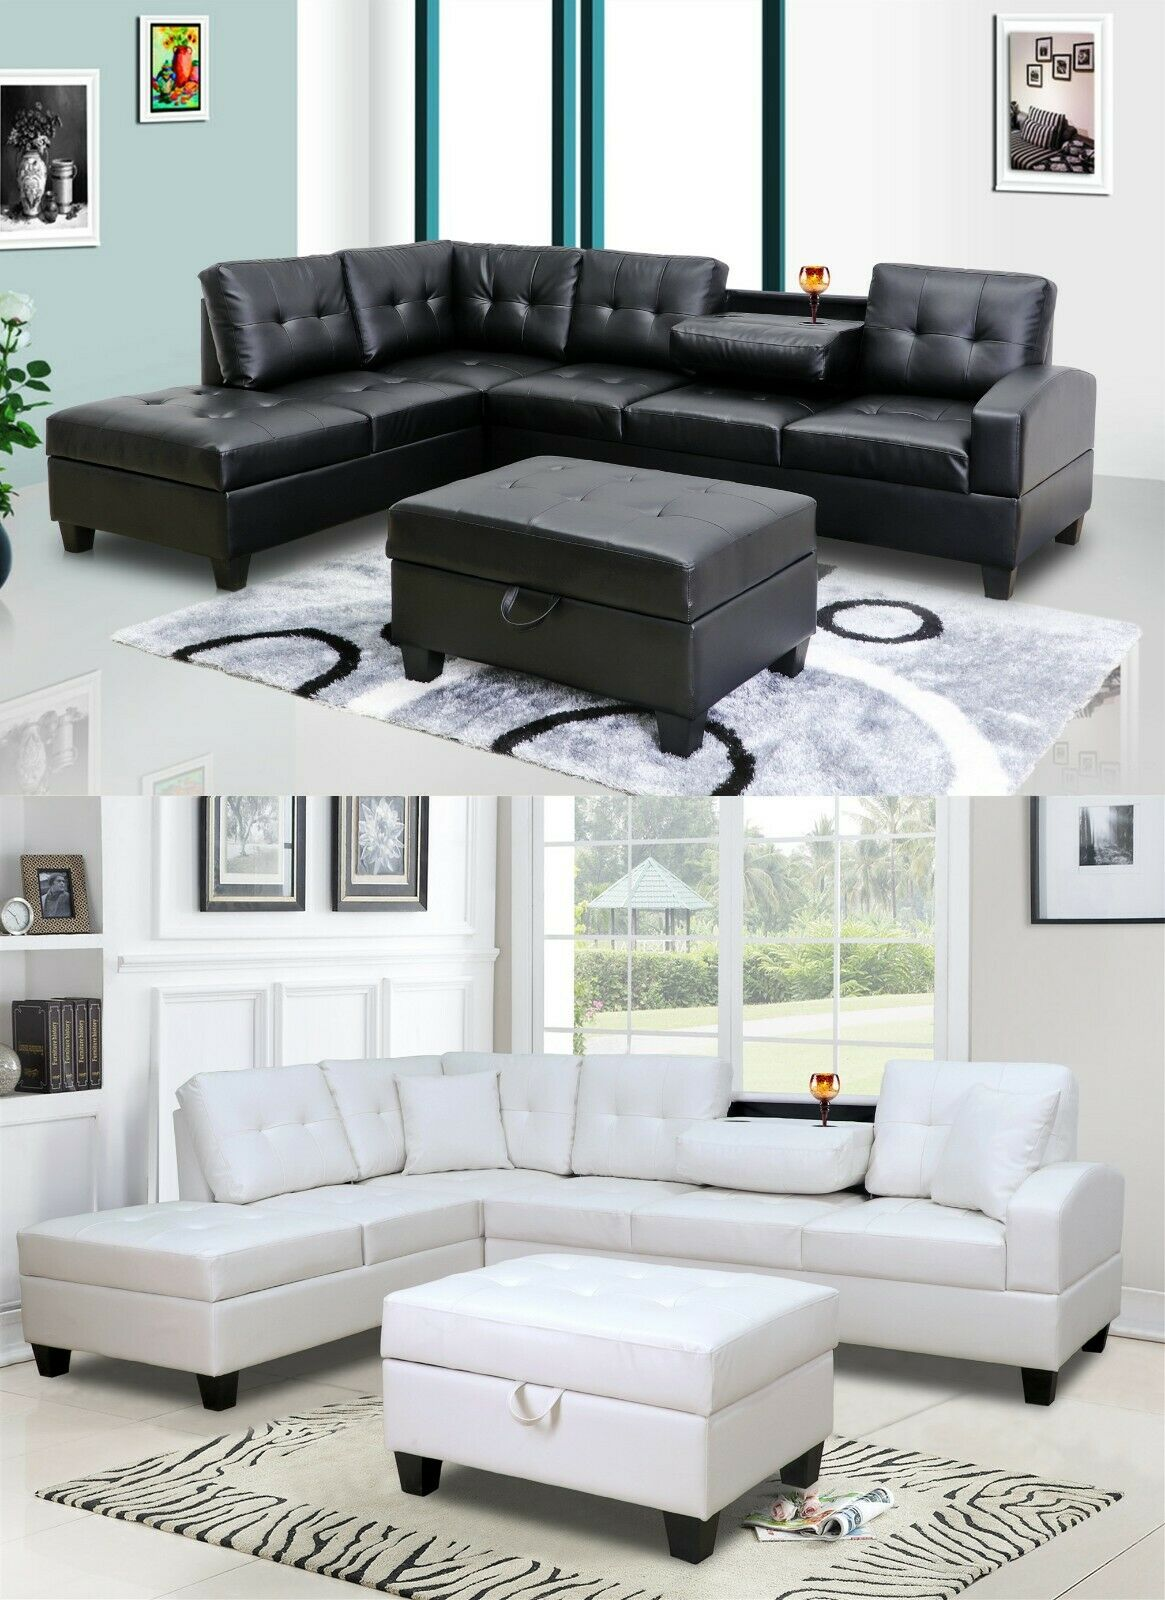 2Pc/ 3Pc Pu Leather Living Room Sectional Sofa Set in Black/ White